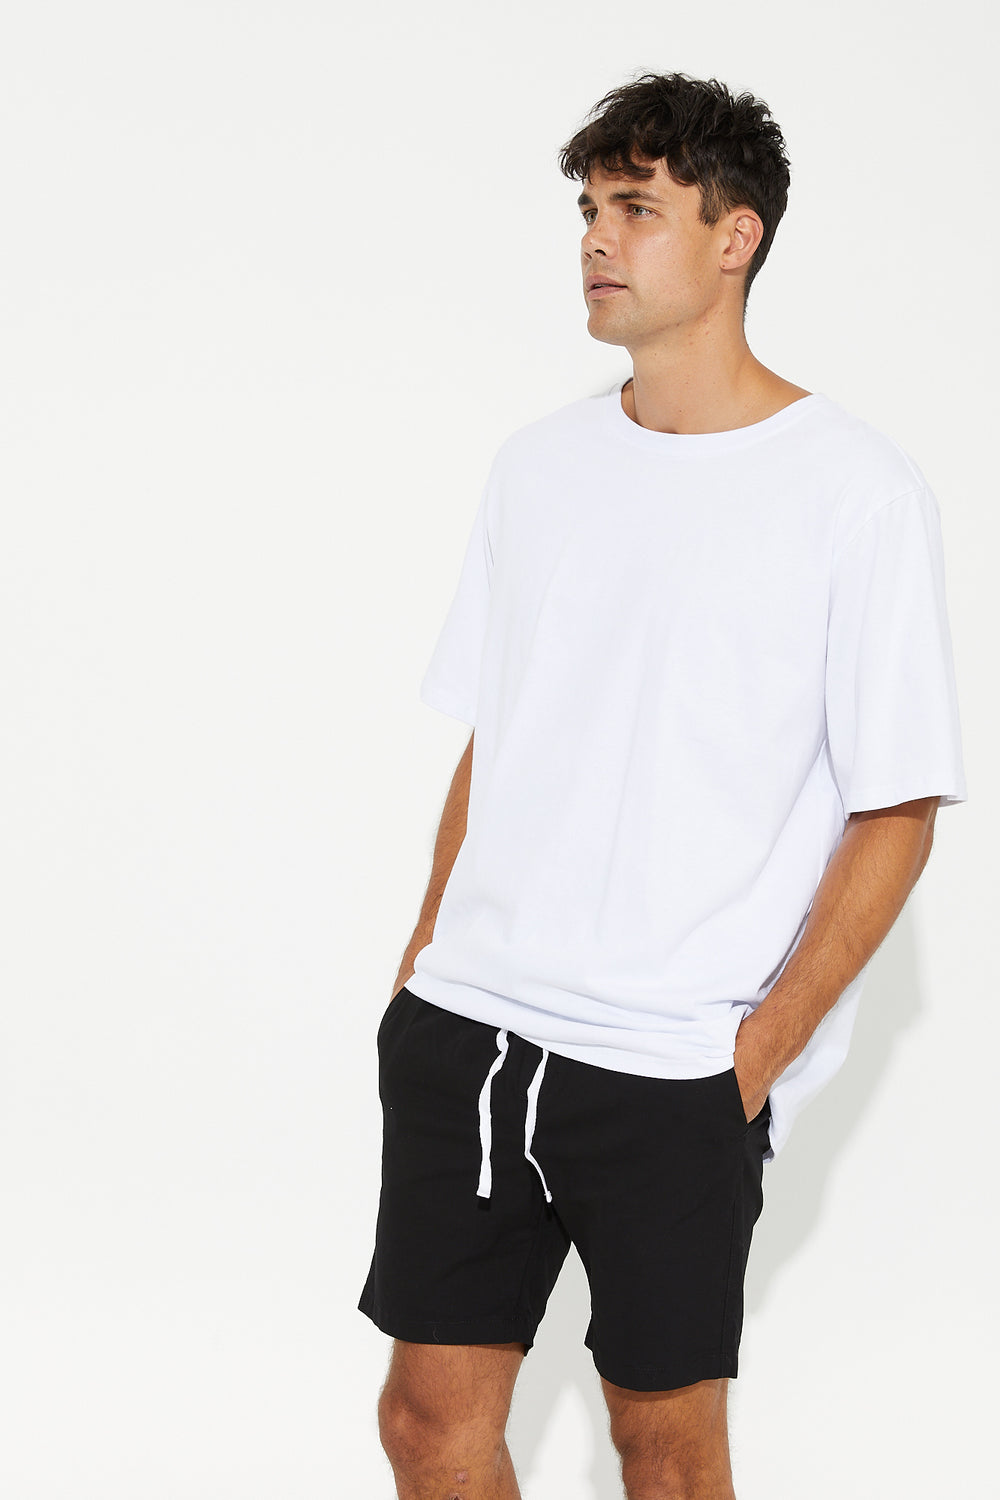 NTH Basic Short Black